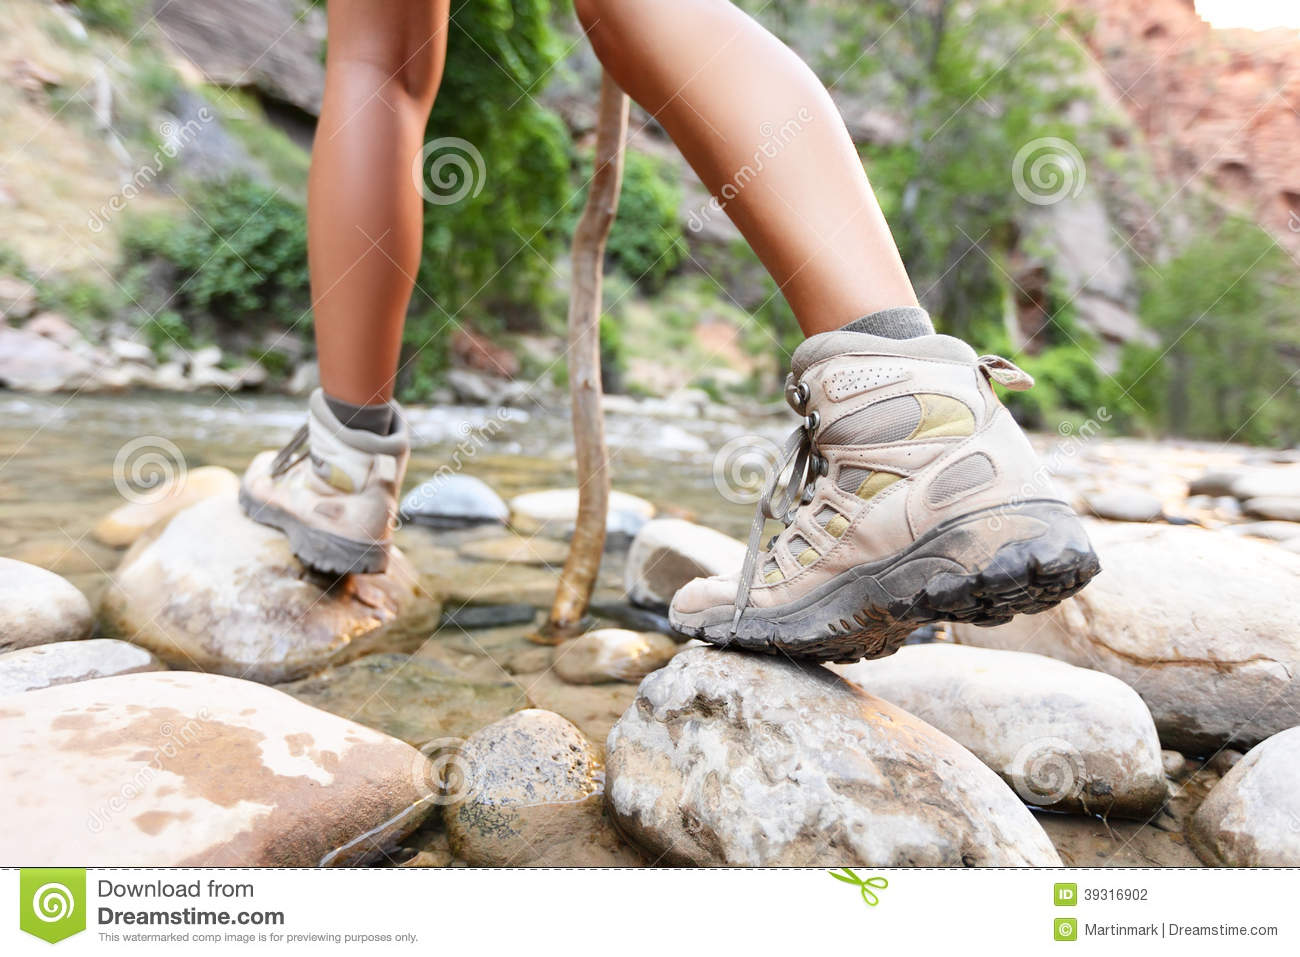 Download Hiking Shoes On Hiker Outdoors Walking Stock Photo - Image of adult, footwear: 39316902